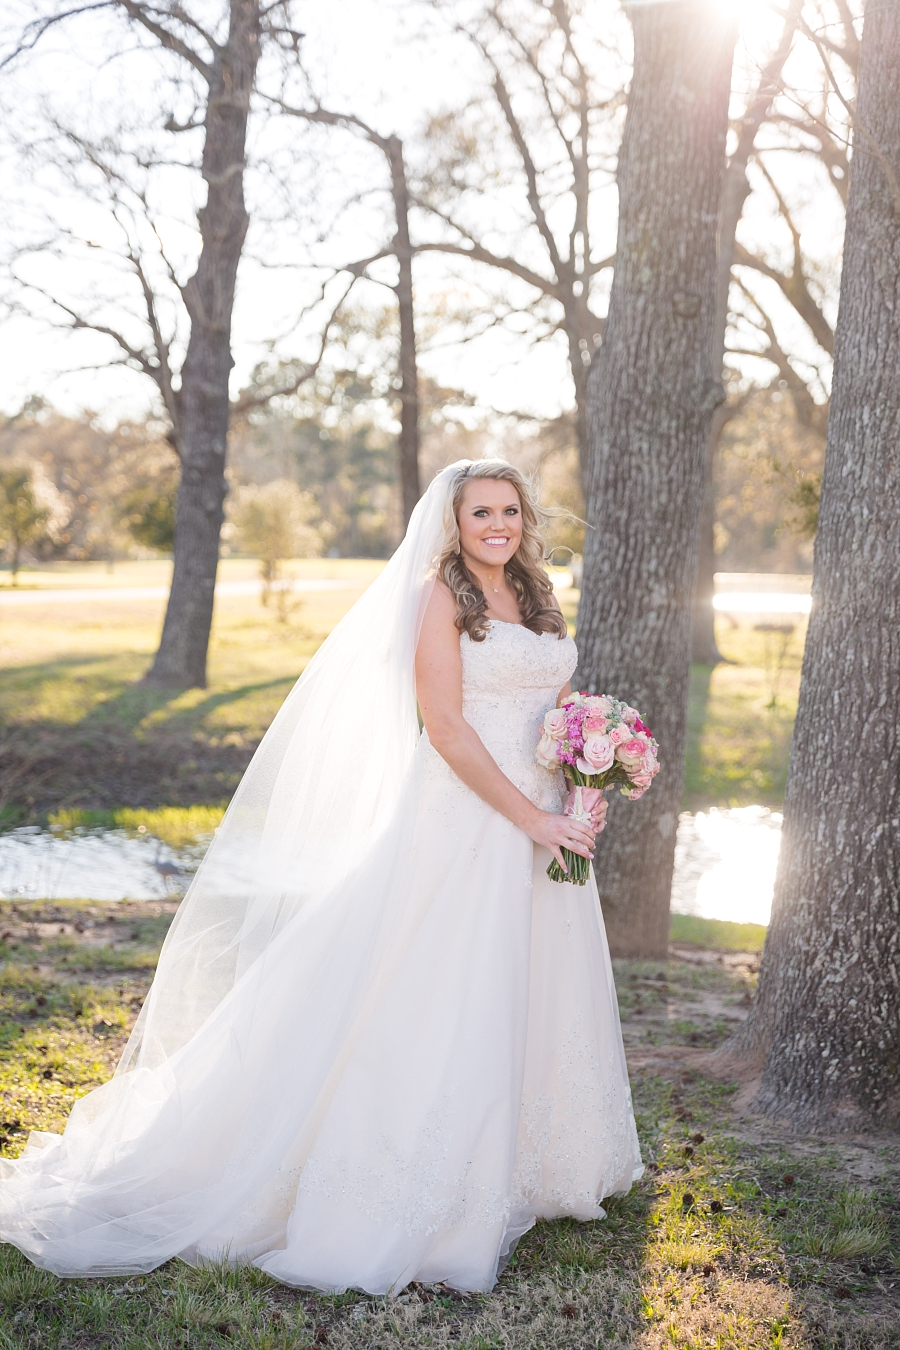 Stacy-Anderson-Photography-Balmorhea-Tomball-Wedding-Photographer_0008.jpg